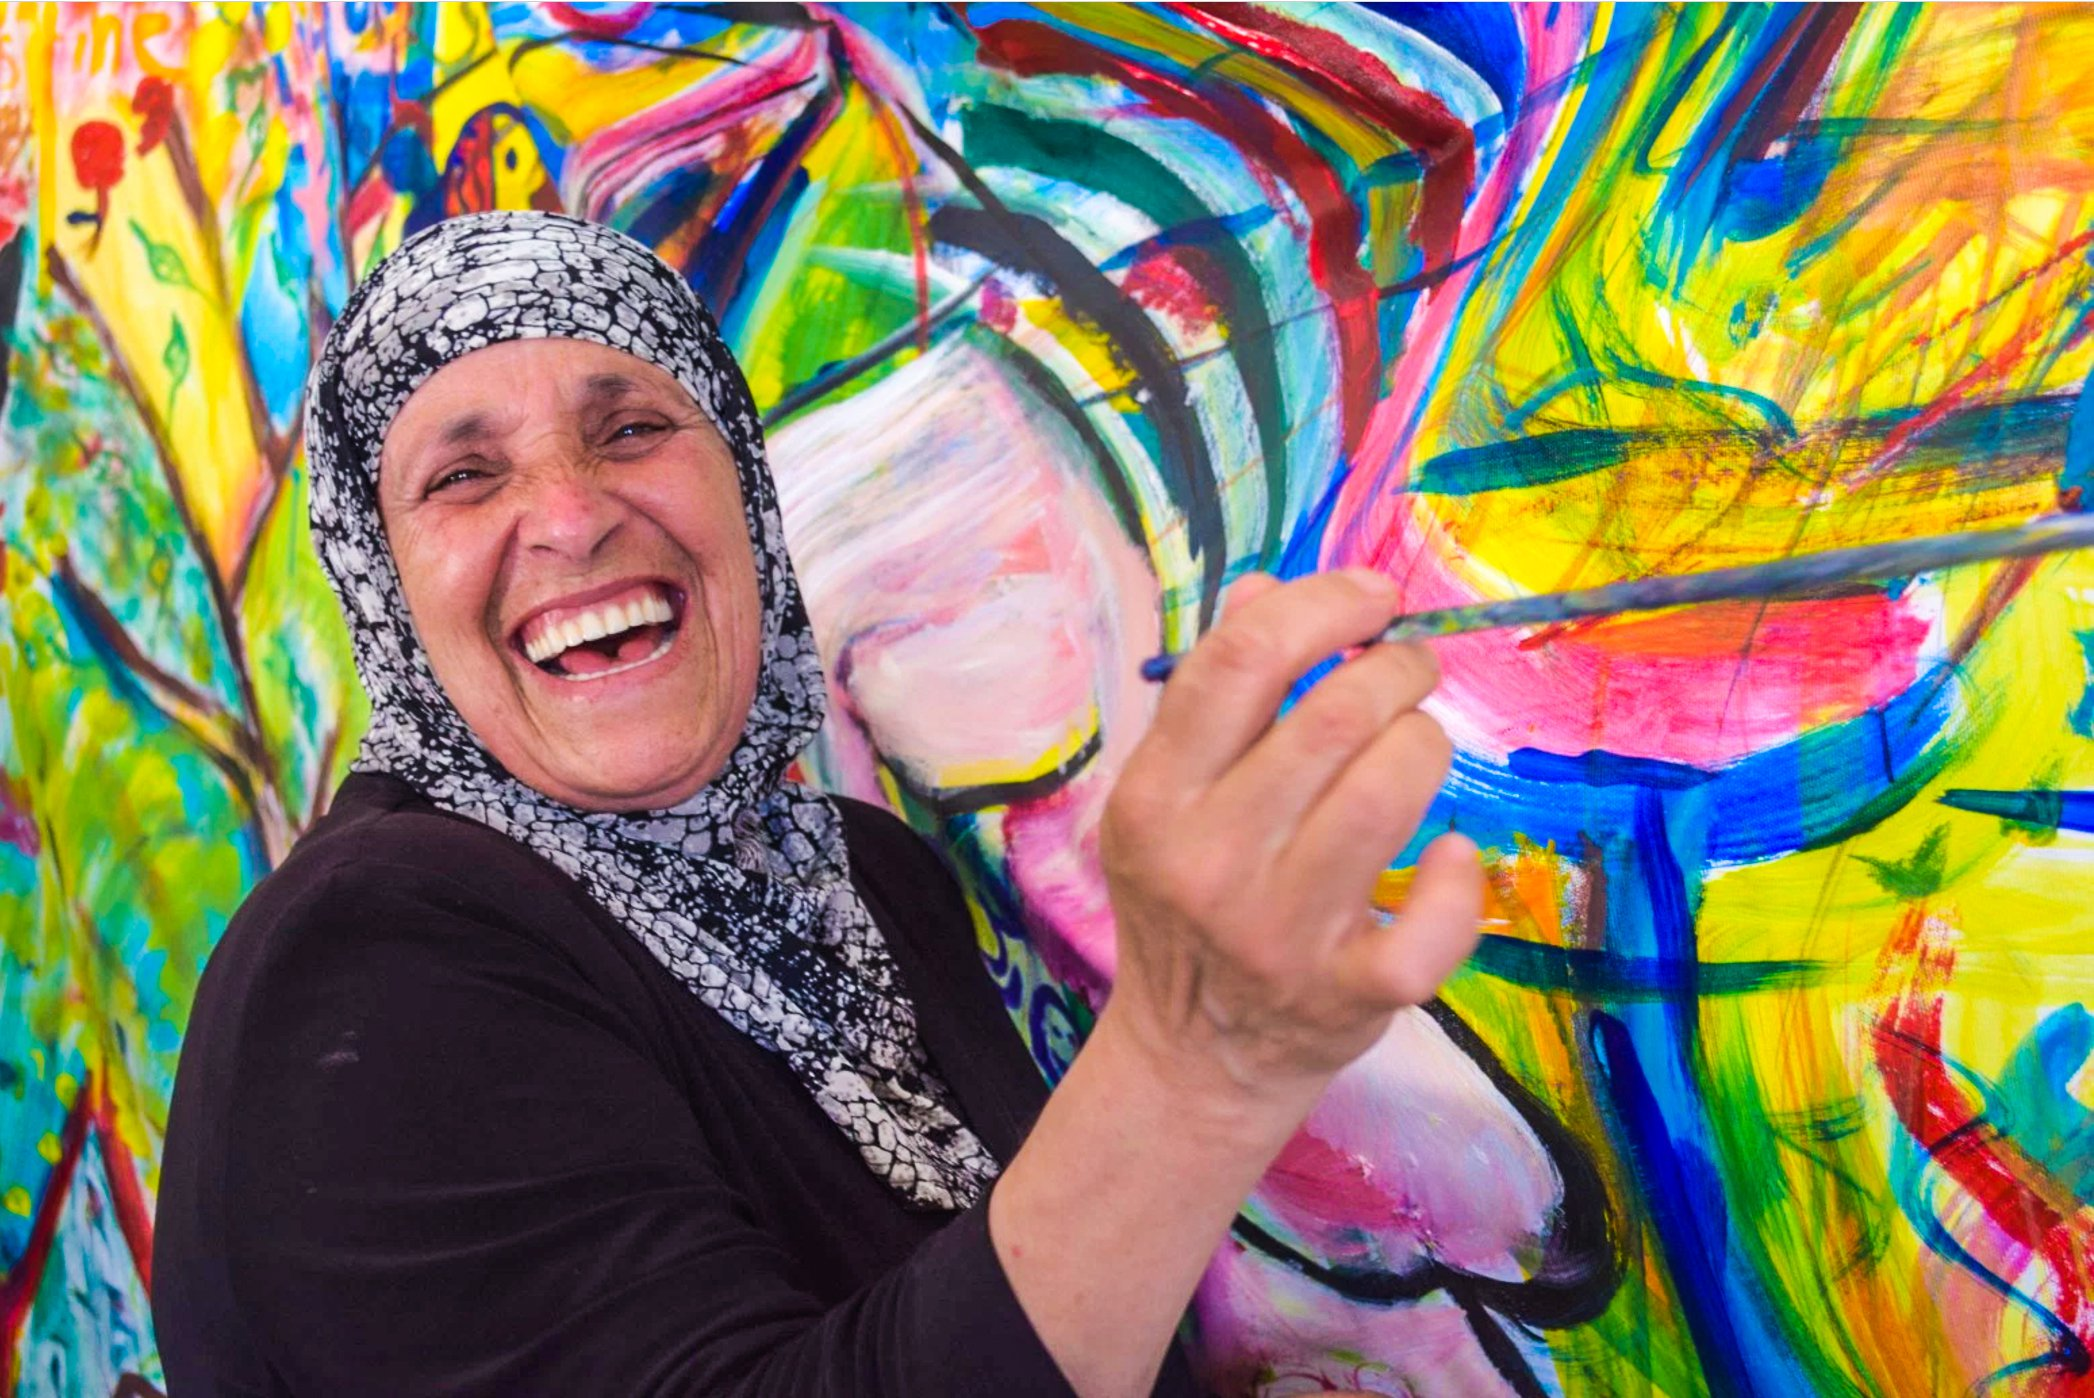 Palestinian Woman Painting Laughing.jpg